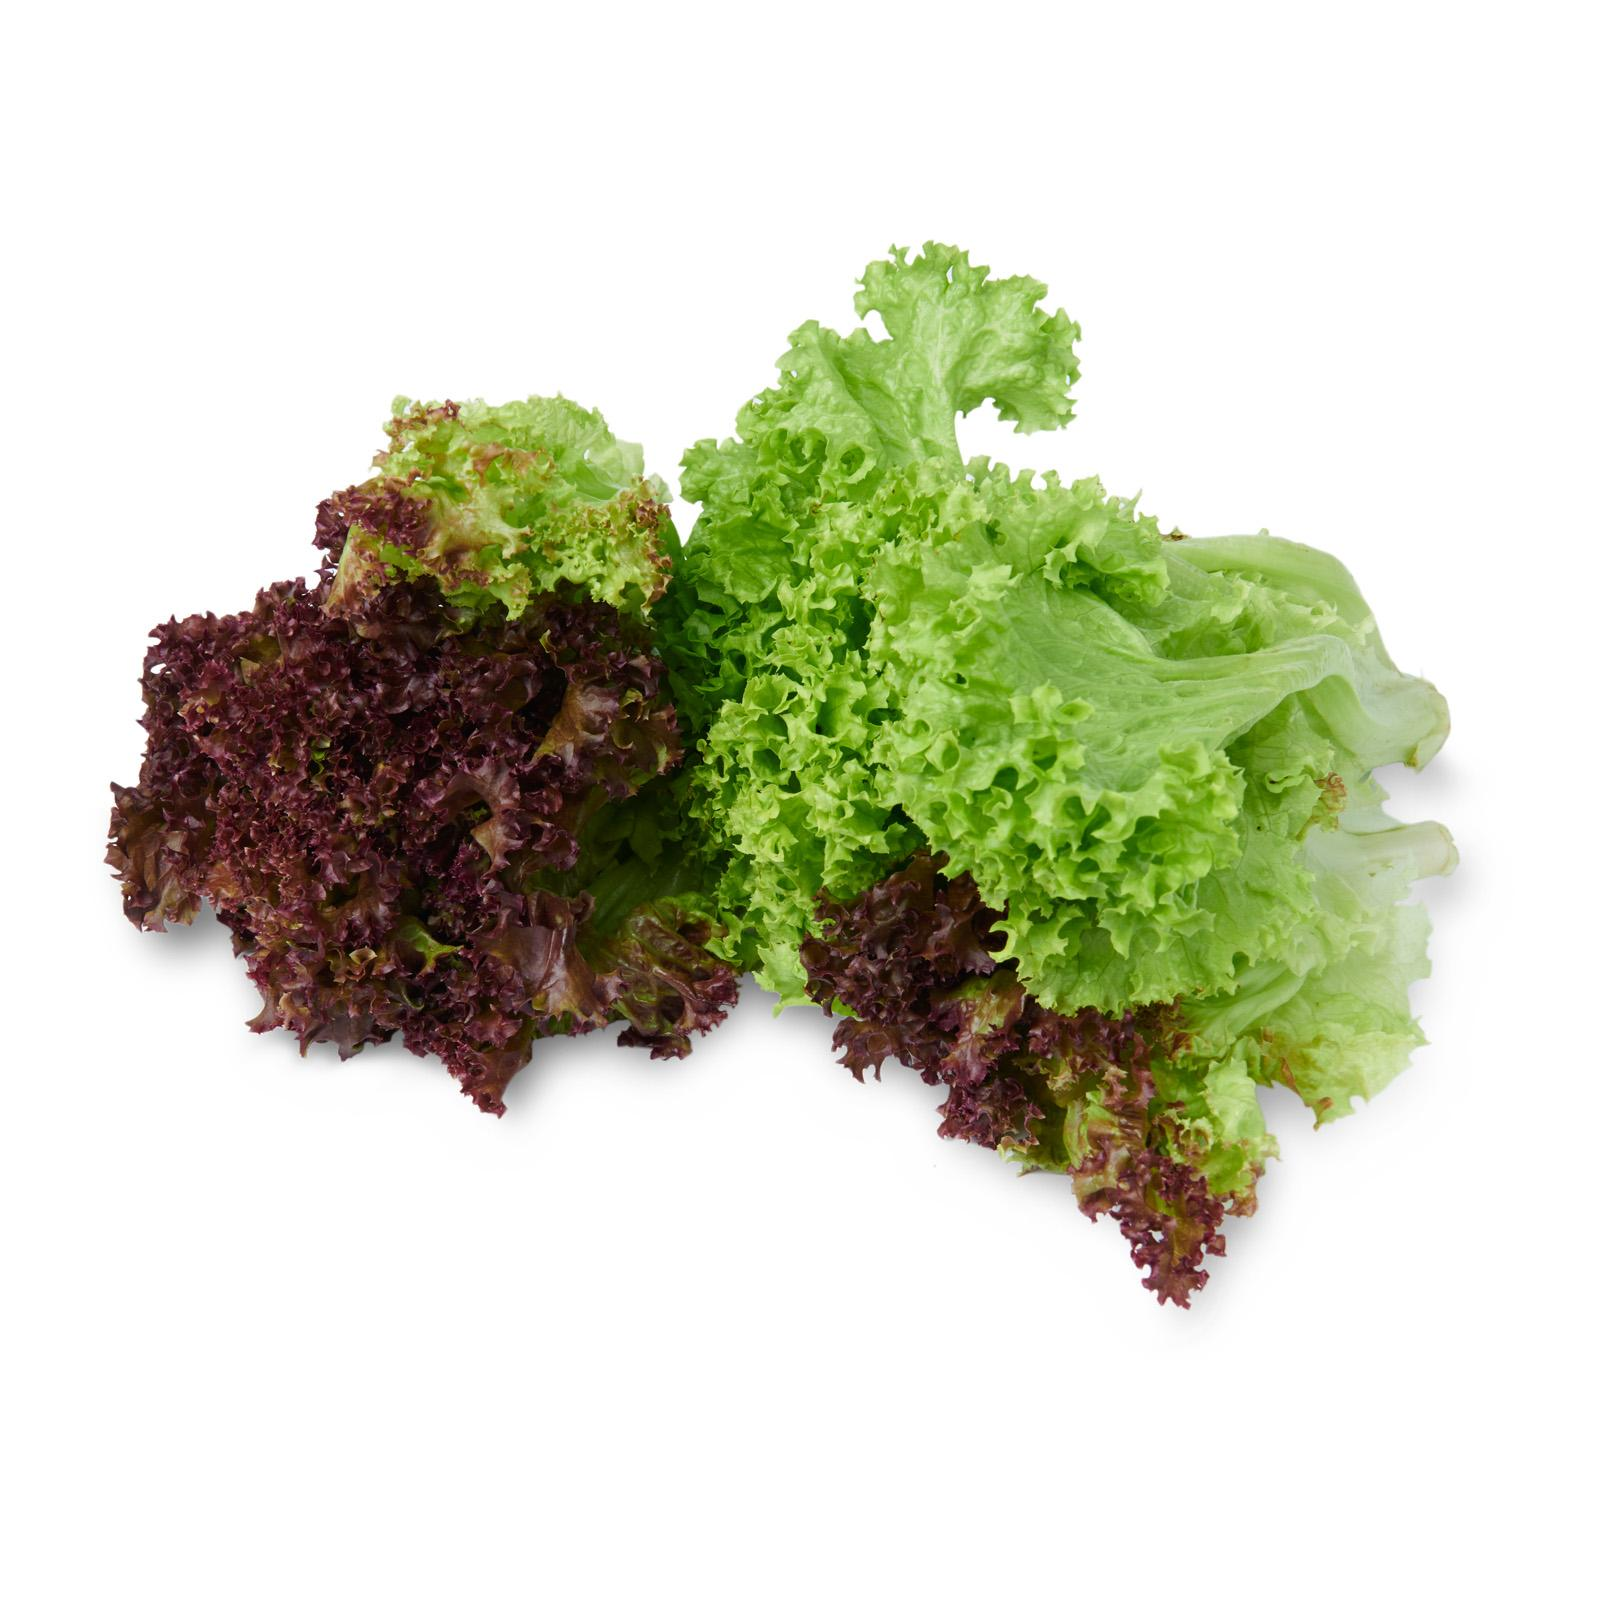 Givvo Green And Red Coral Lettuce By Redmart.